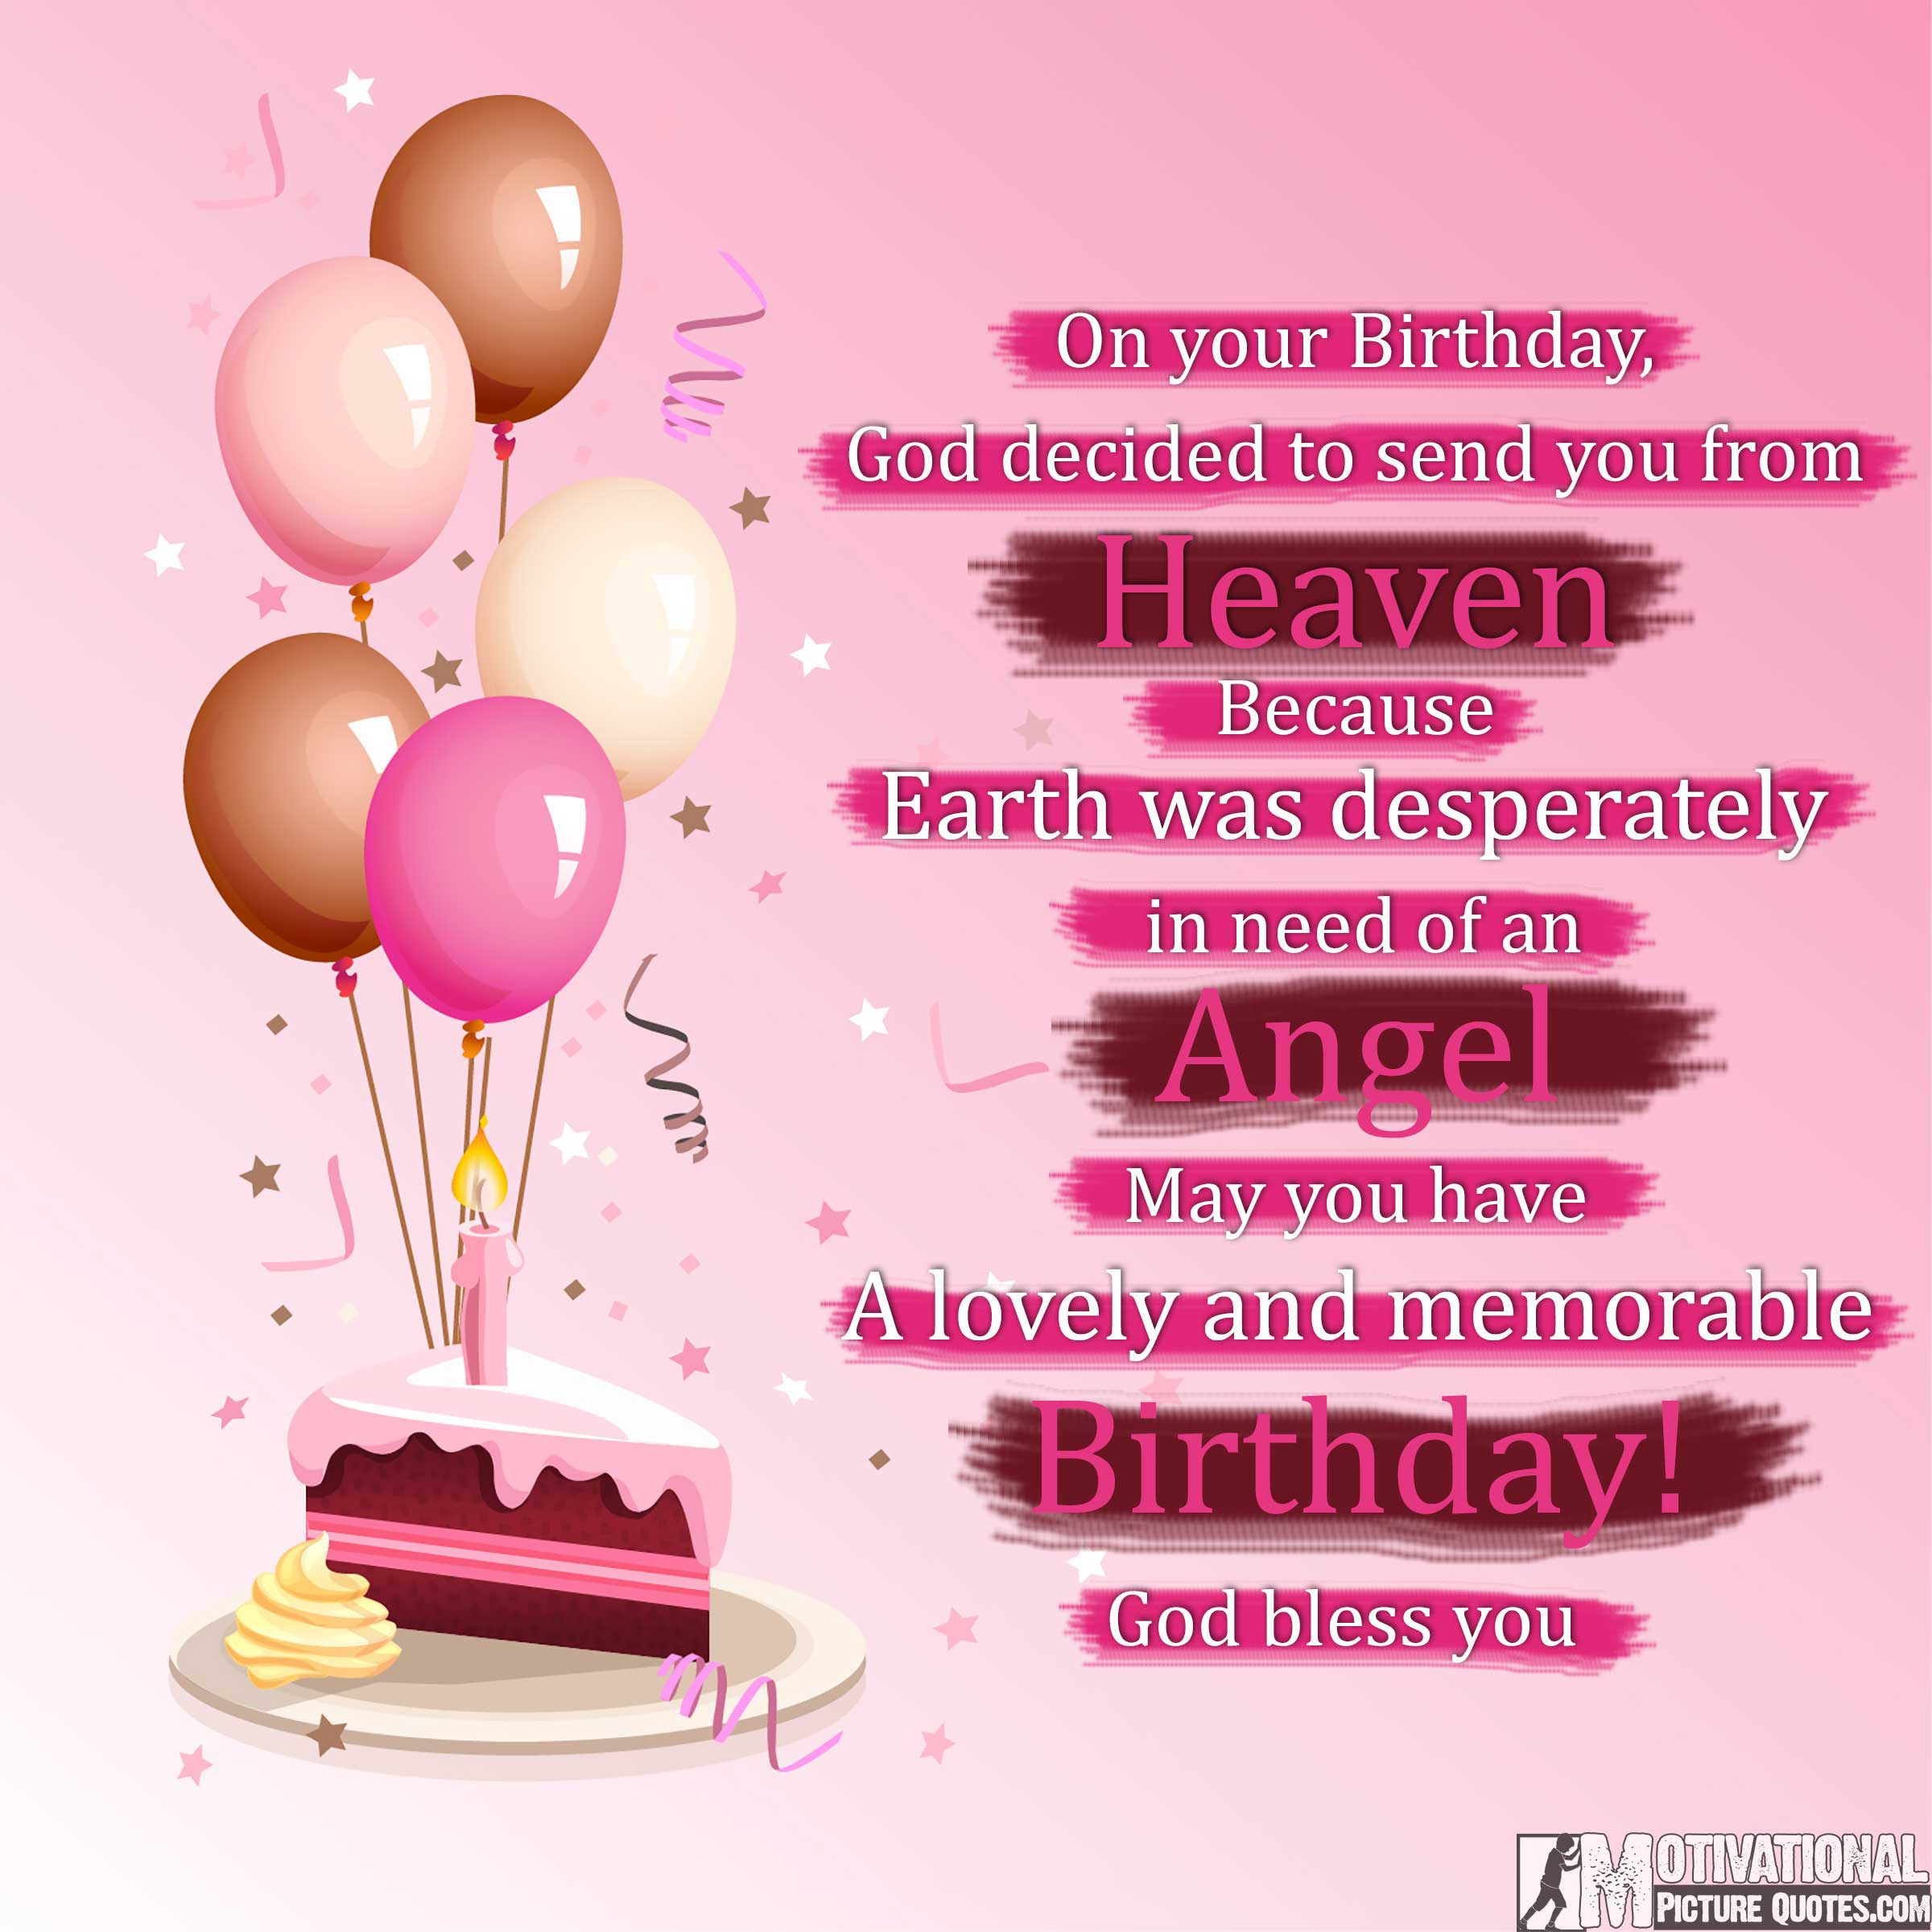 35 Inspirational Birthday Quotes Images – Birthday Greetings to a Friend Quote